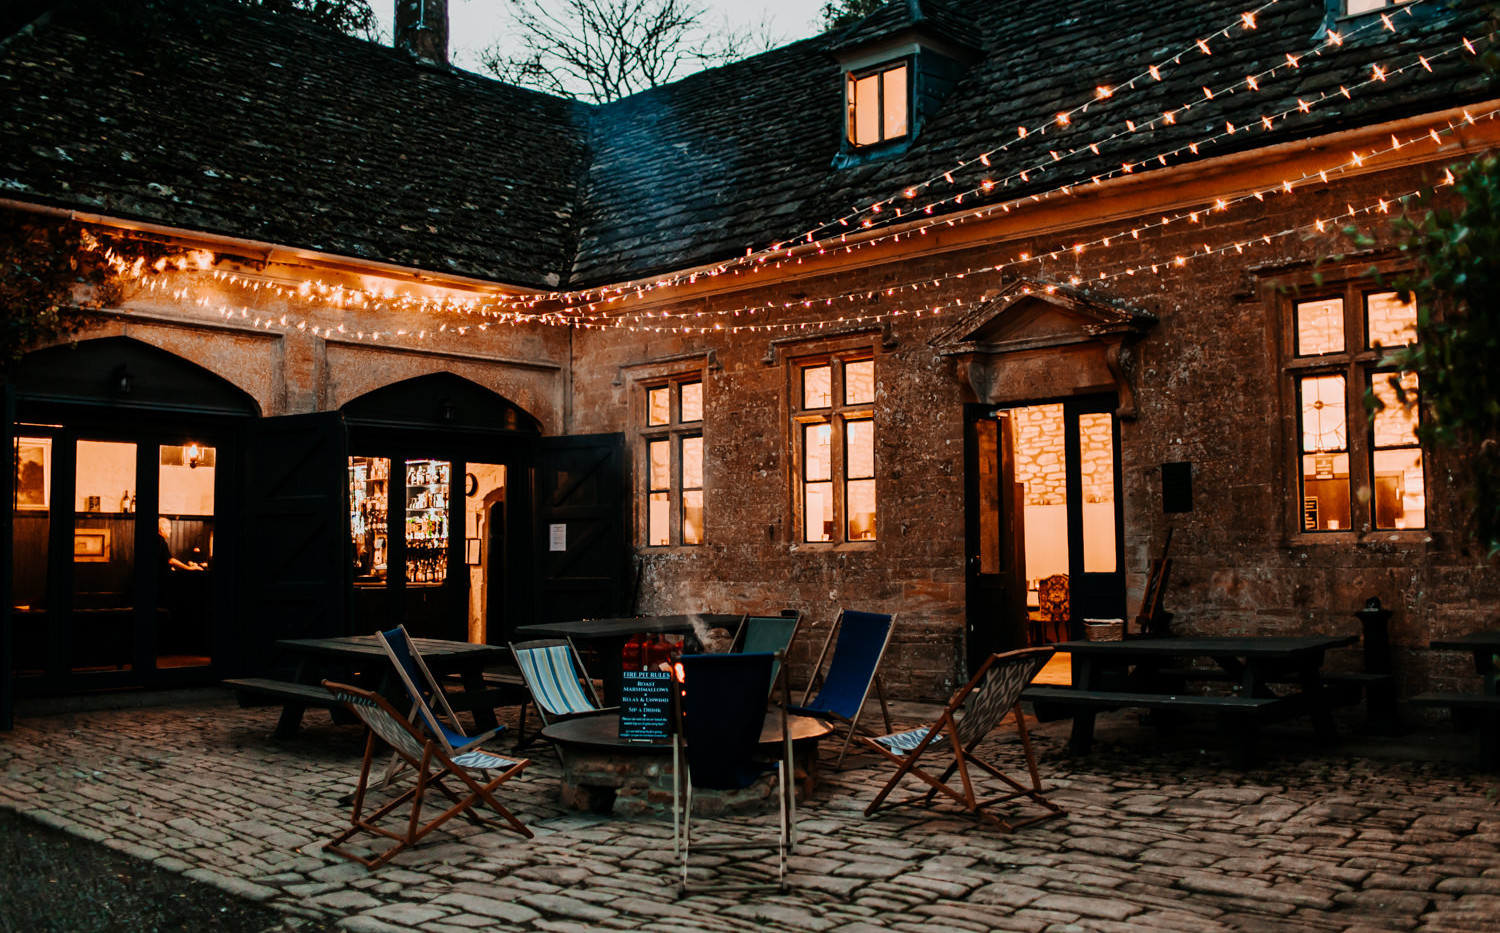 The Courtyard of The Party Barn